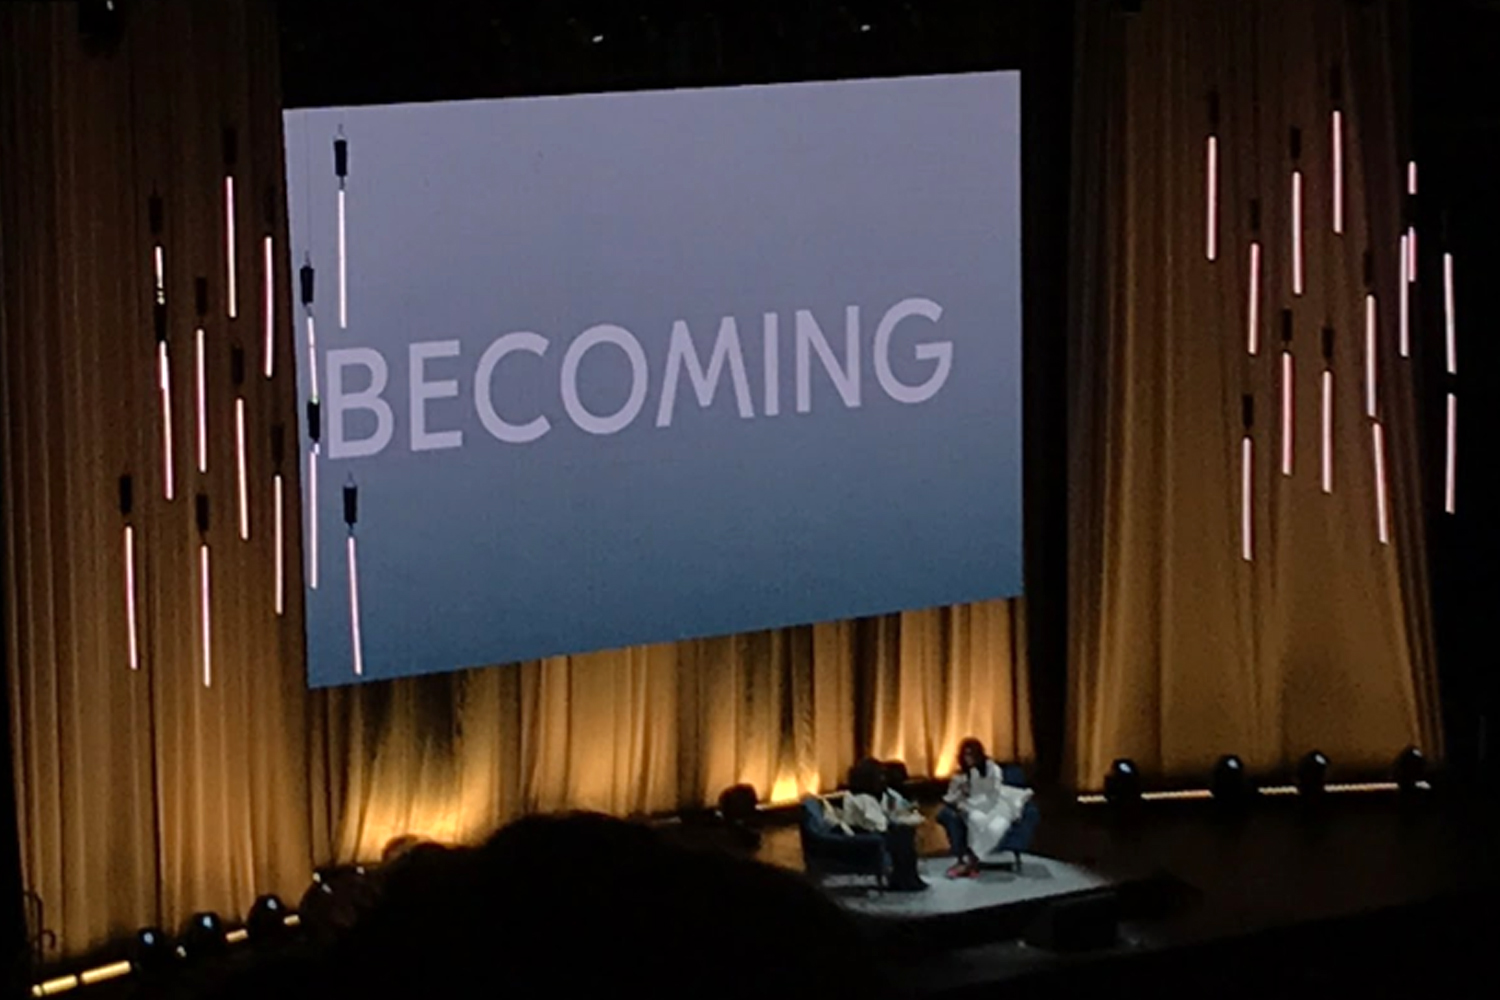 Michelle Obama and Oprah Winfrey on stage in Chicago at the United Center as they discuss Obama's new memoir.